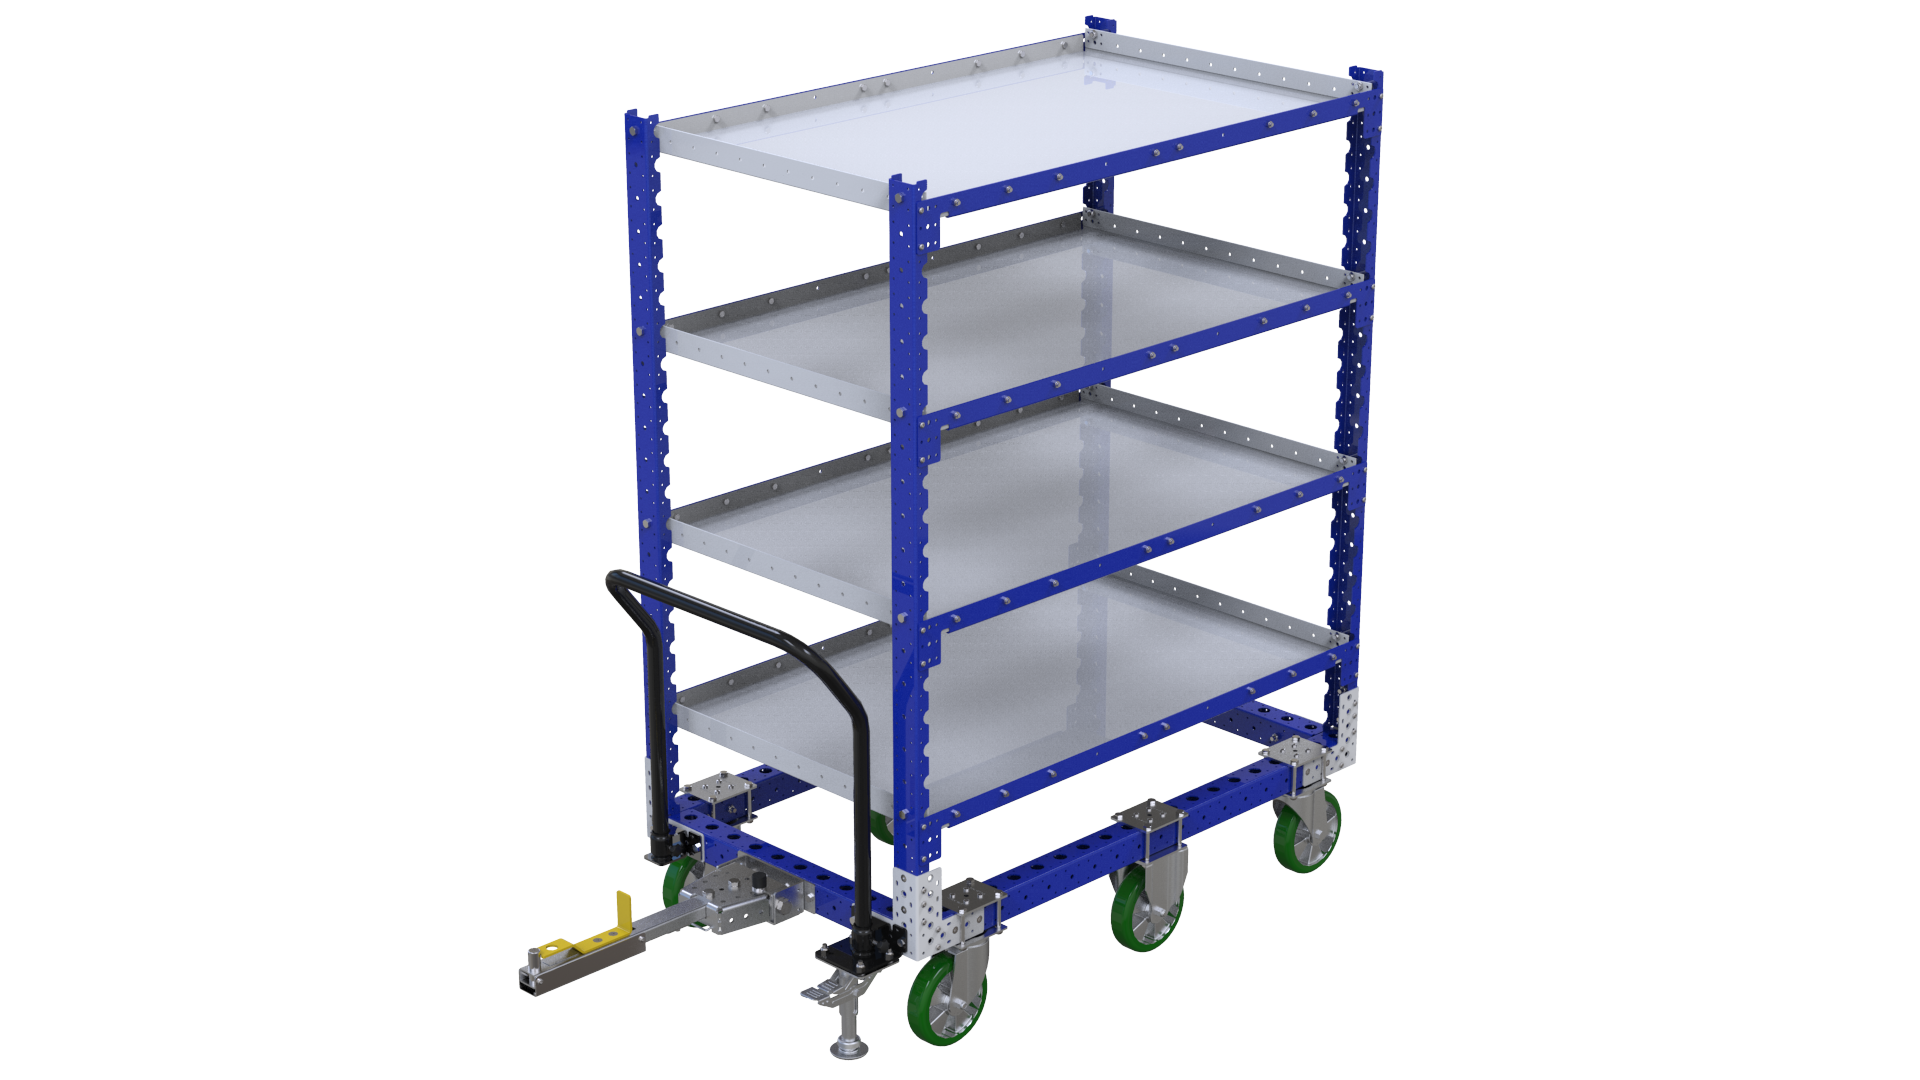 Flat shelf cart designed by FlexQube